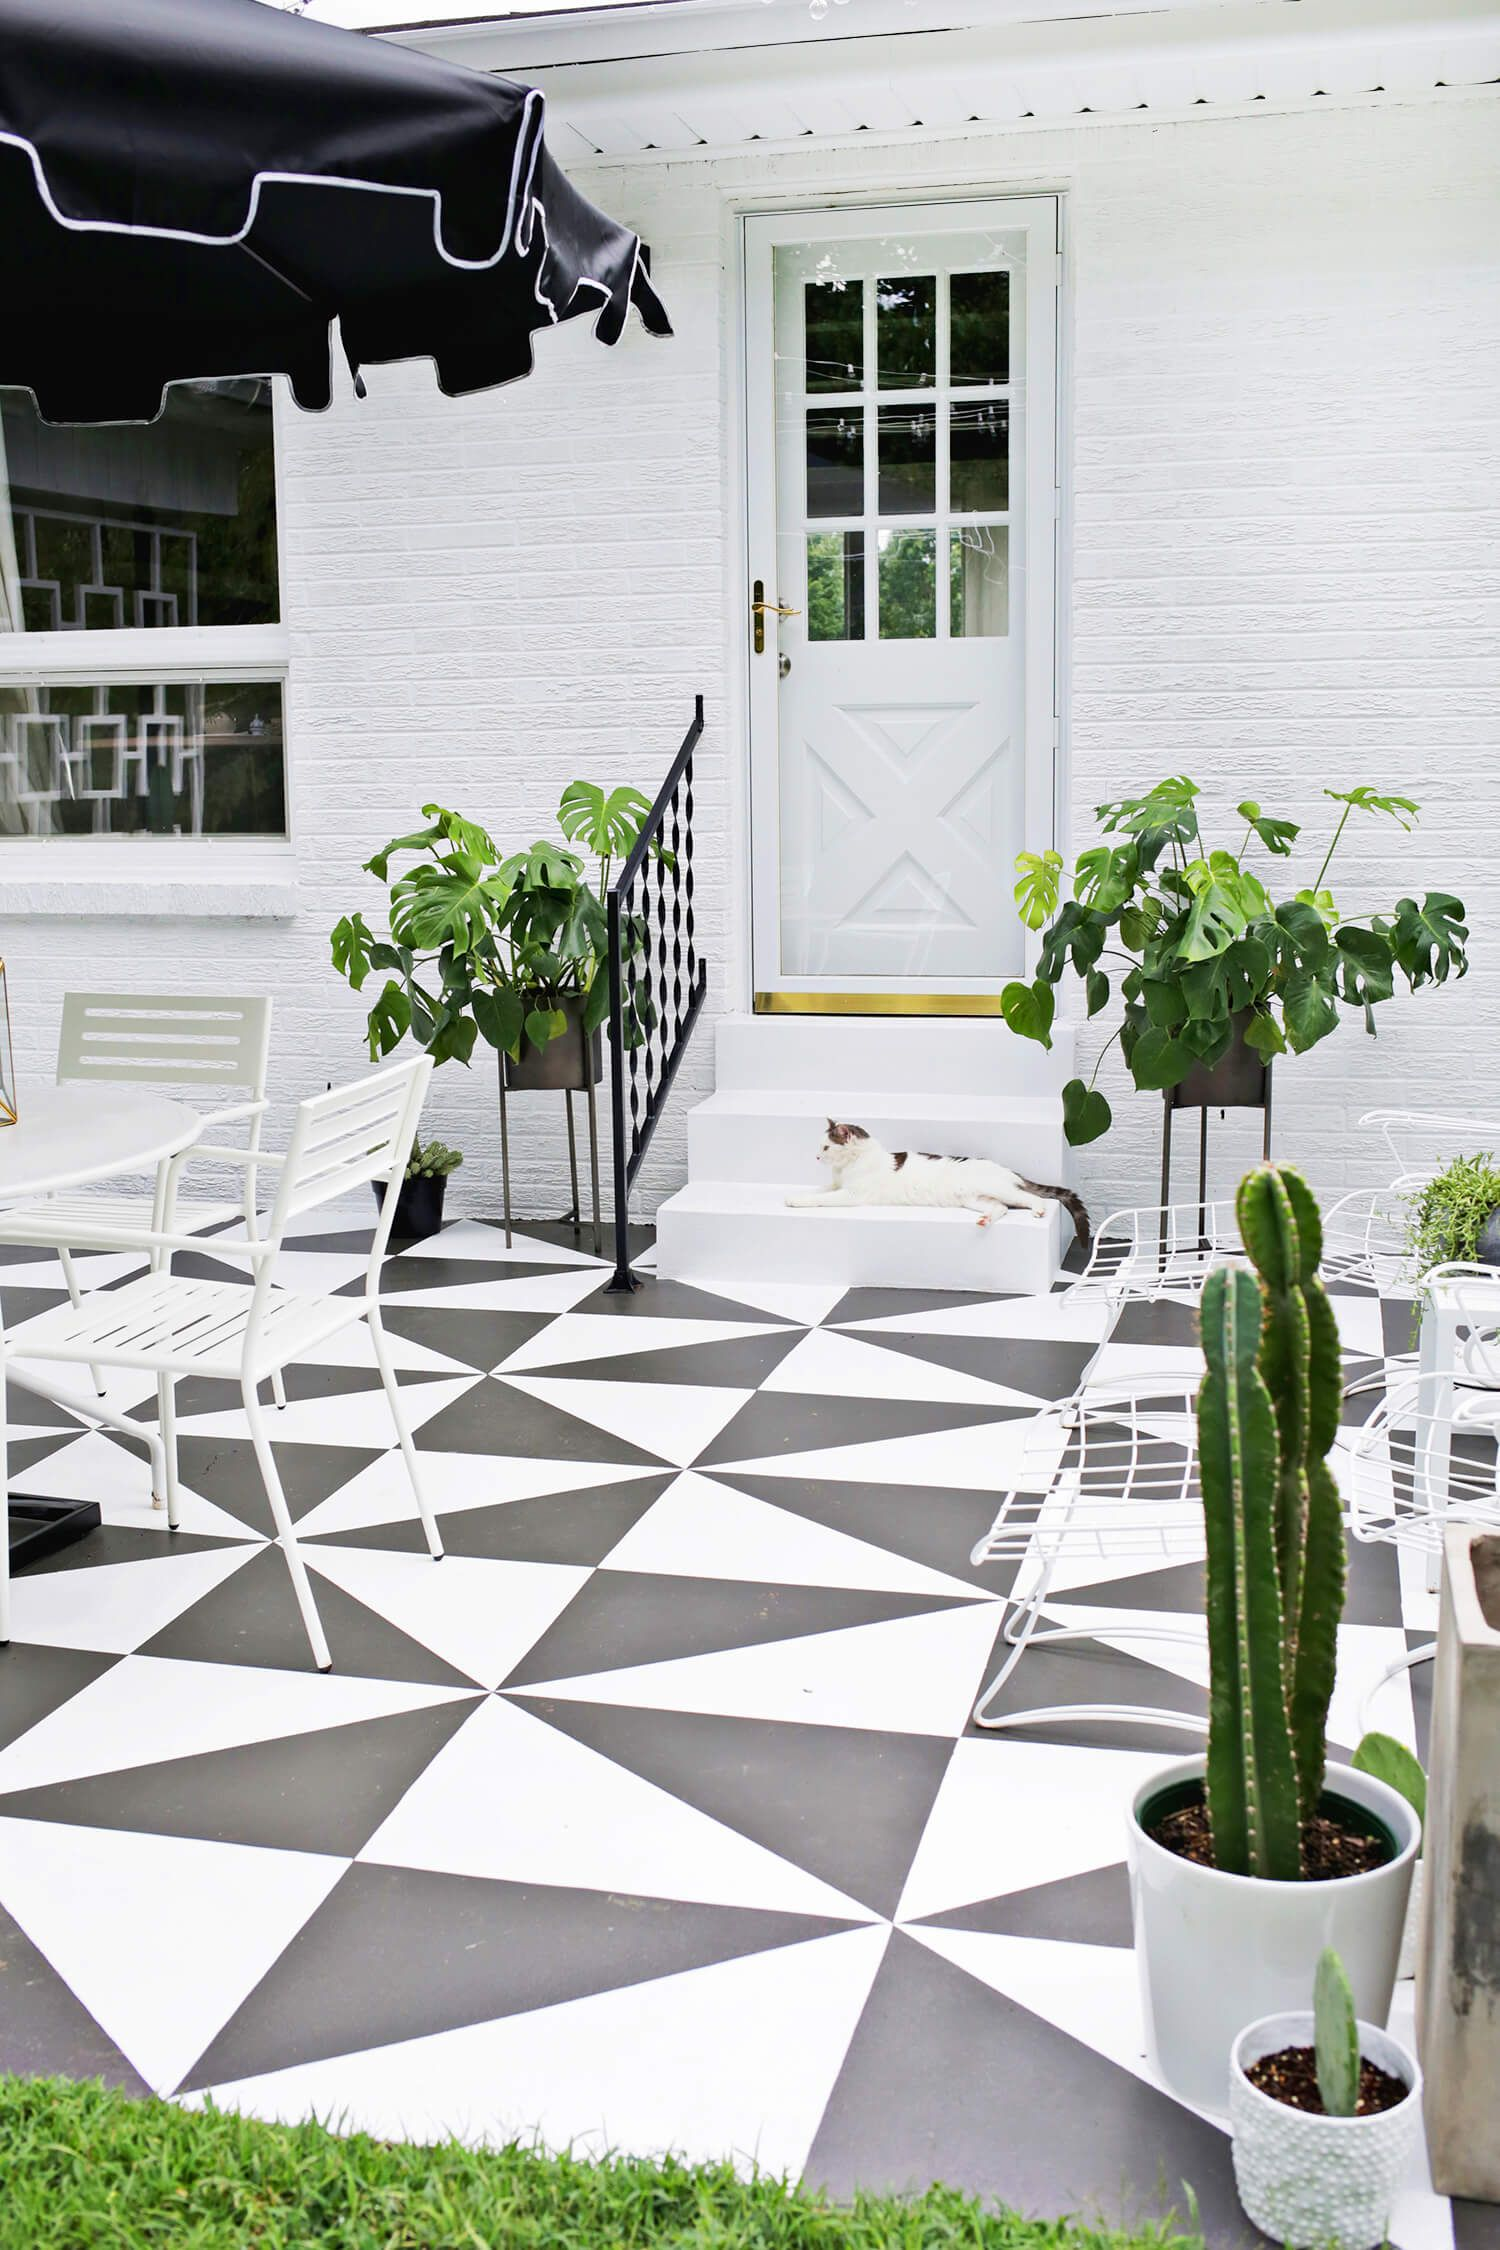 Diy Paint Concrete Patio 10 Beautiful Patios And Outdoor Spaces Home Decor